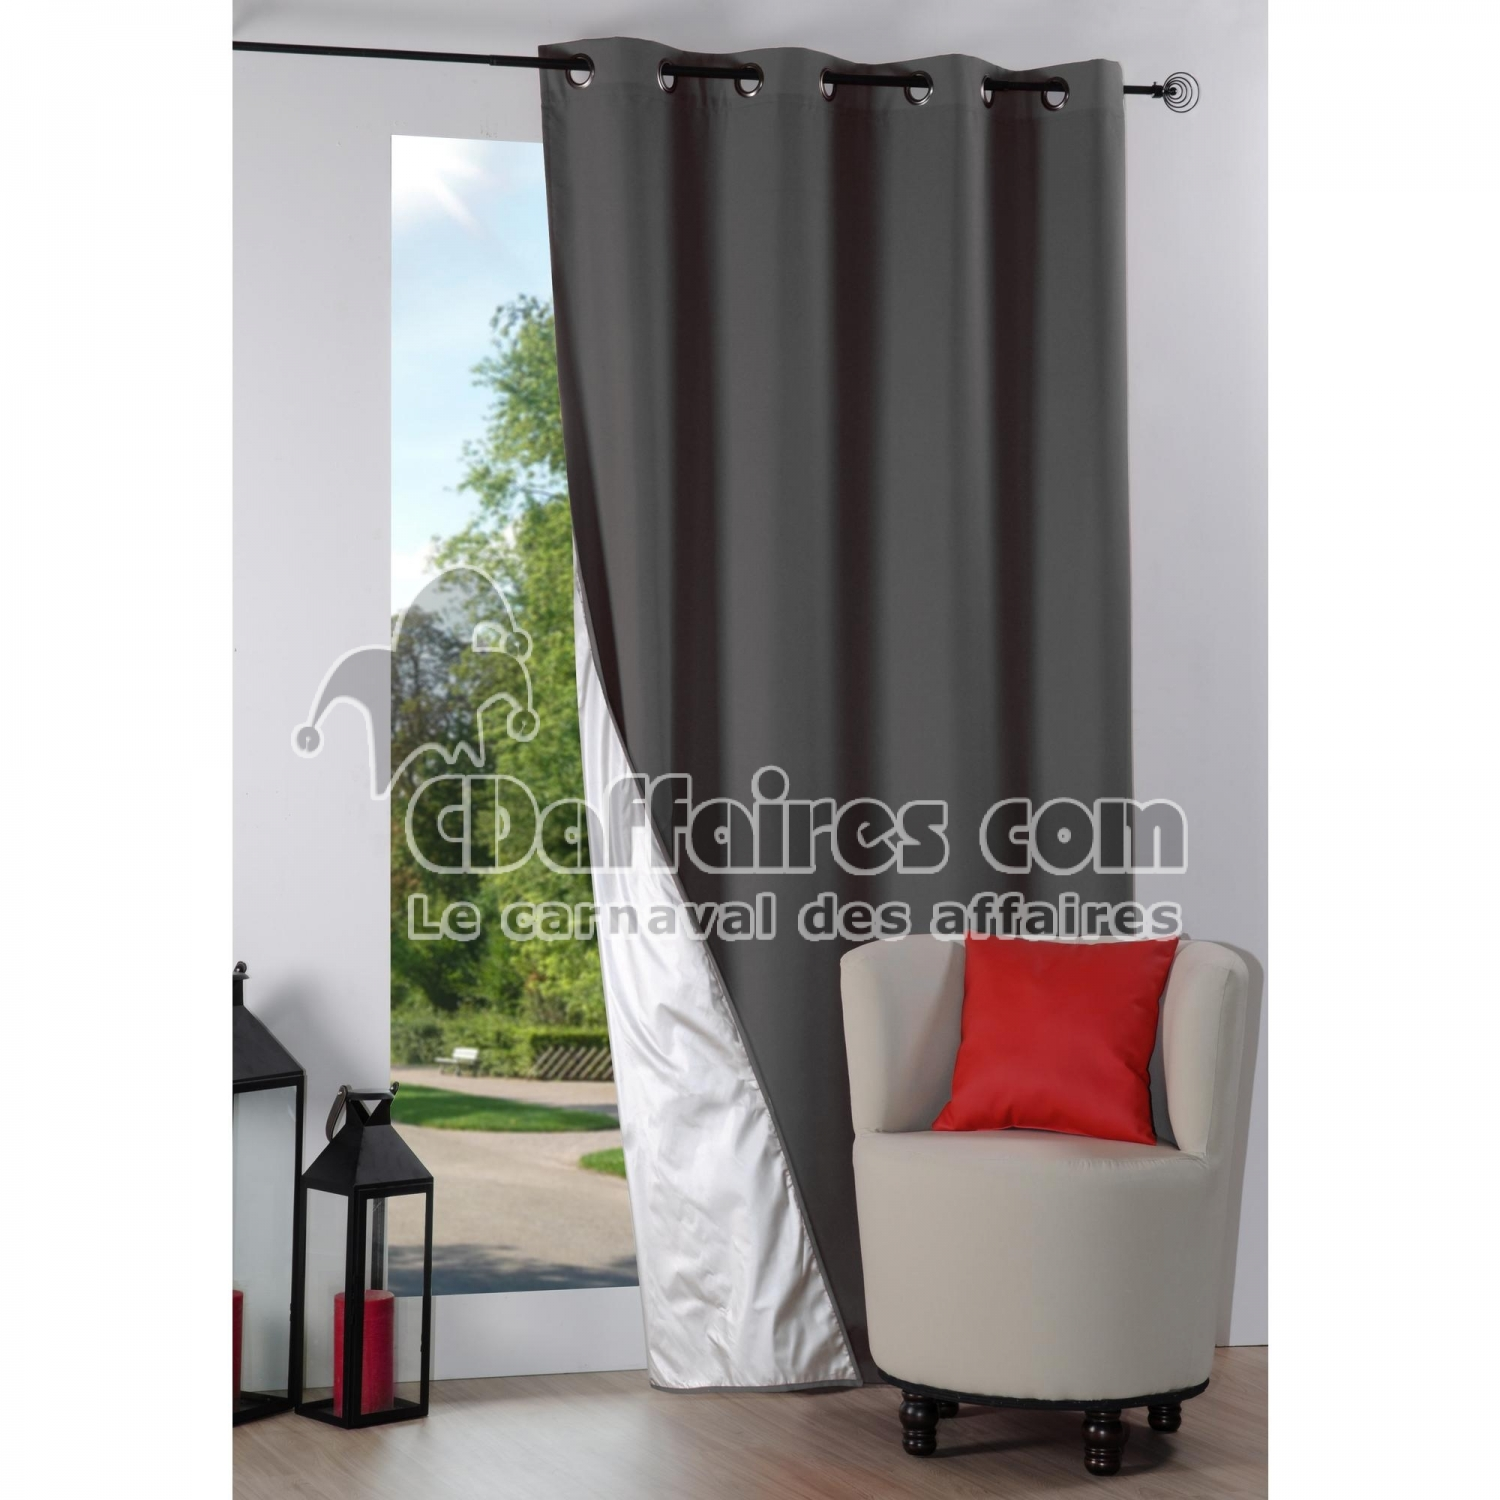 liste de cadeaux de axelle t rideau thermique douche top moumoute. Black Bedroom Furniture Sets. Home Design Ideas